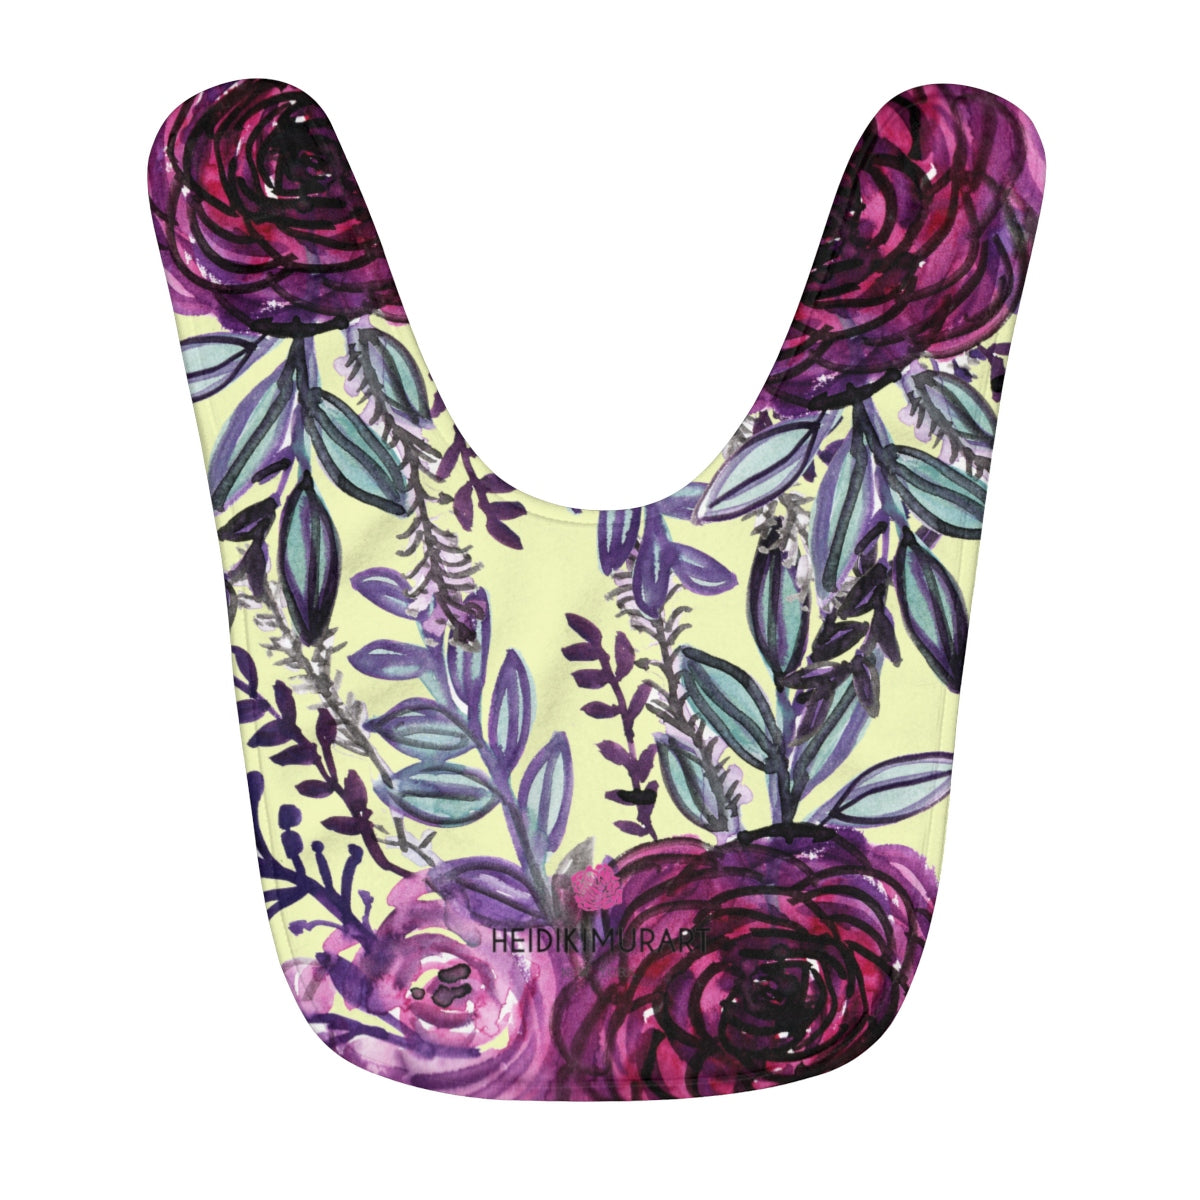 Purple Floral Rose Print Designer Cute Toddler Fleece Baby Bib - Made in USA-Kids clothes-One Size-Heidi Kimura Art LLC